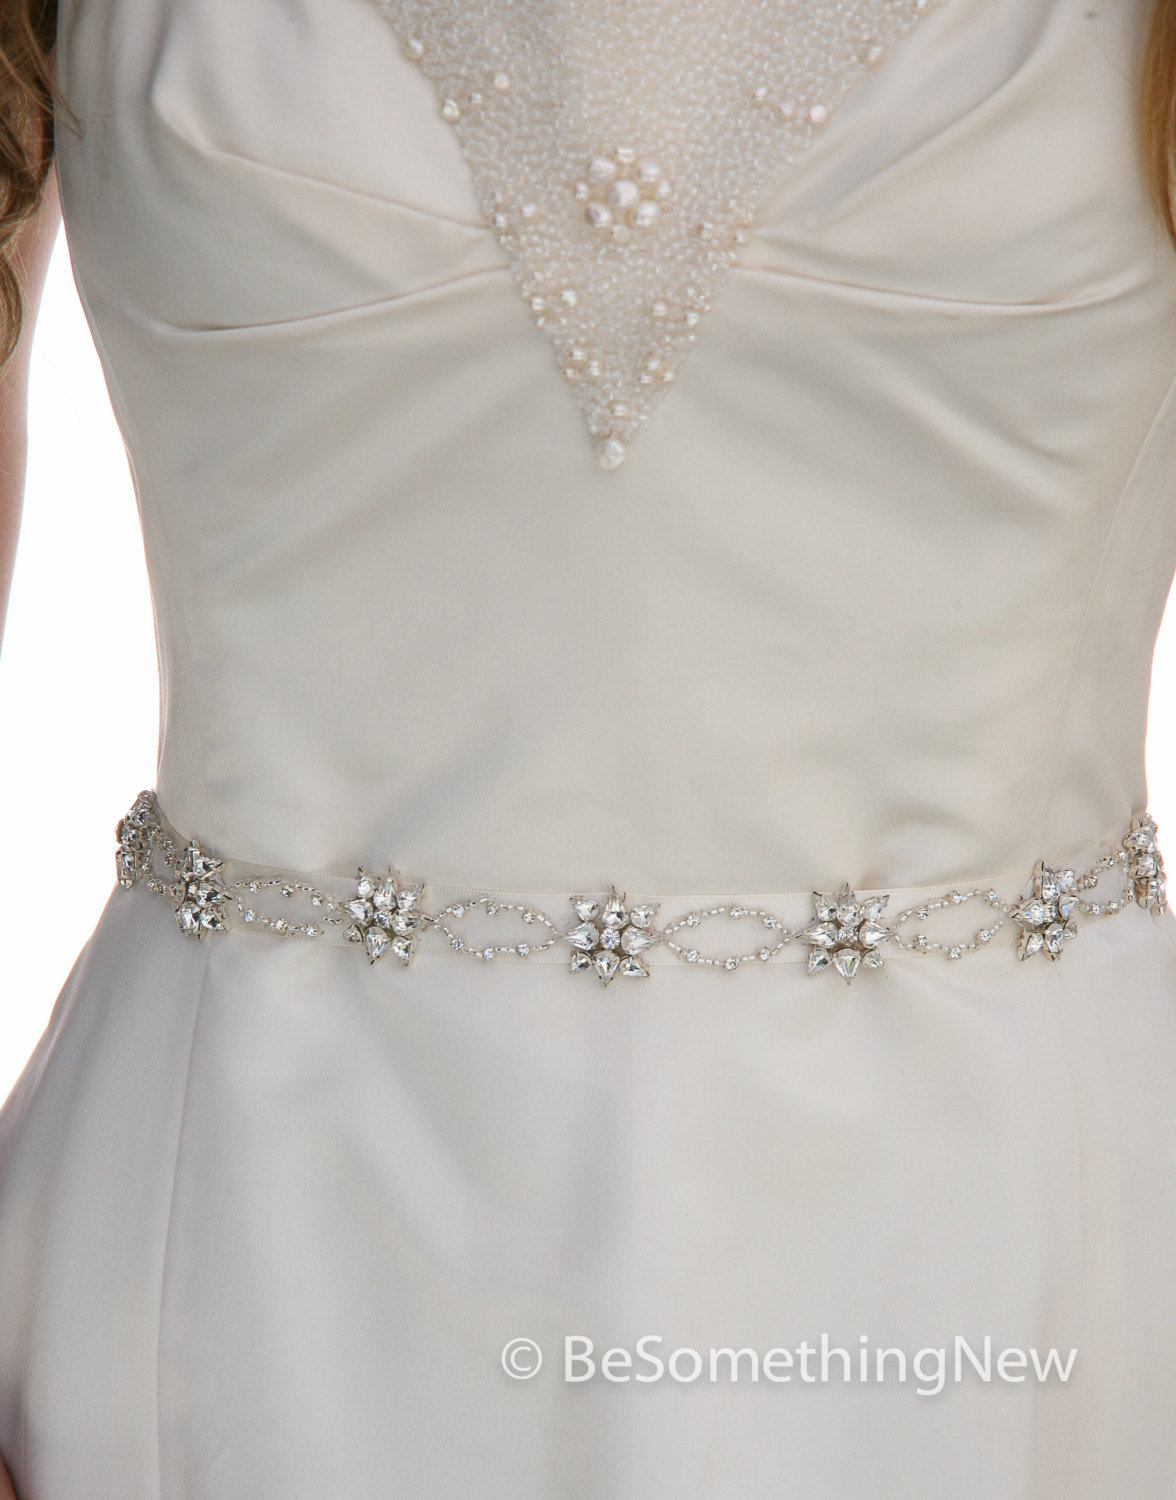 Narrow Rhinestone Wedding Dress Sash Belt or Headband on Ribbon with ...